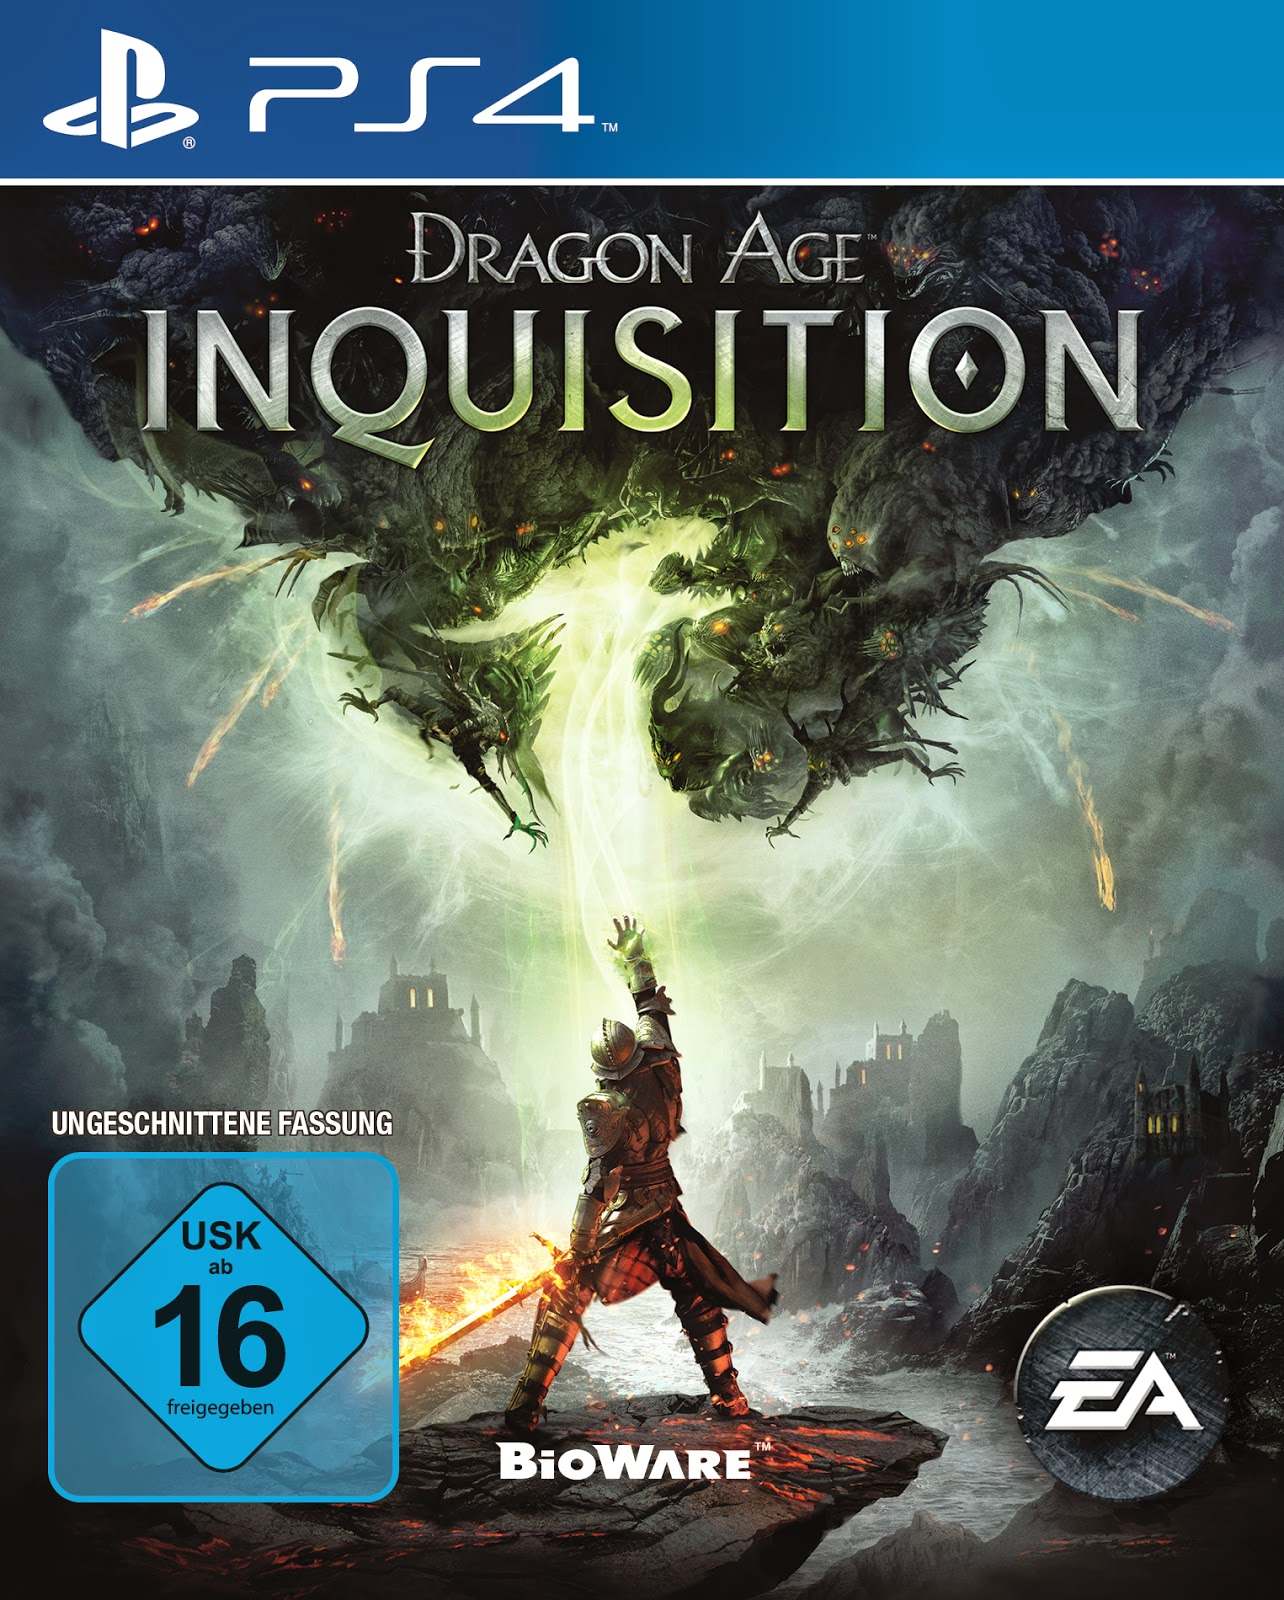 http://www.amazon.de/Bioware-1004051-Dragon-Age-Inquisition/dp/B00JSQQYMA/ref=sr_1_1_twi_4?s=videogames&ie=UTF8&qid=1420227674&sr=1-1&keywords=Dragon+Age%3A+Inquisition